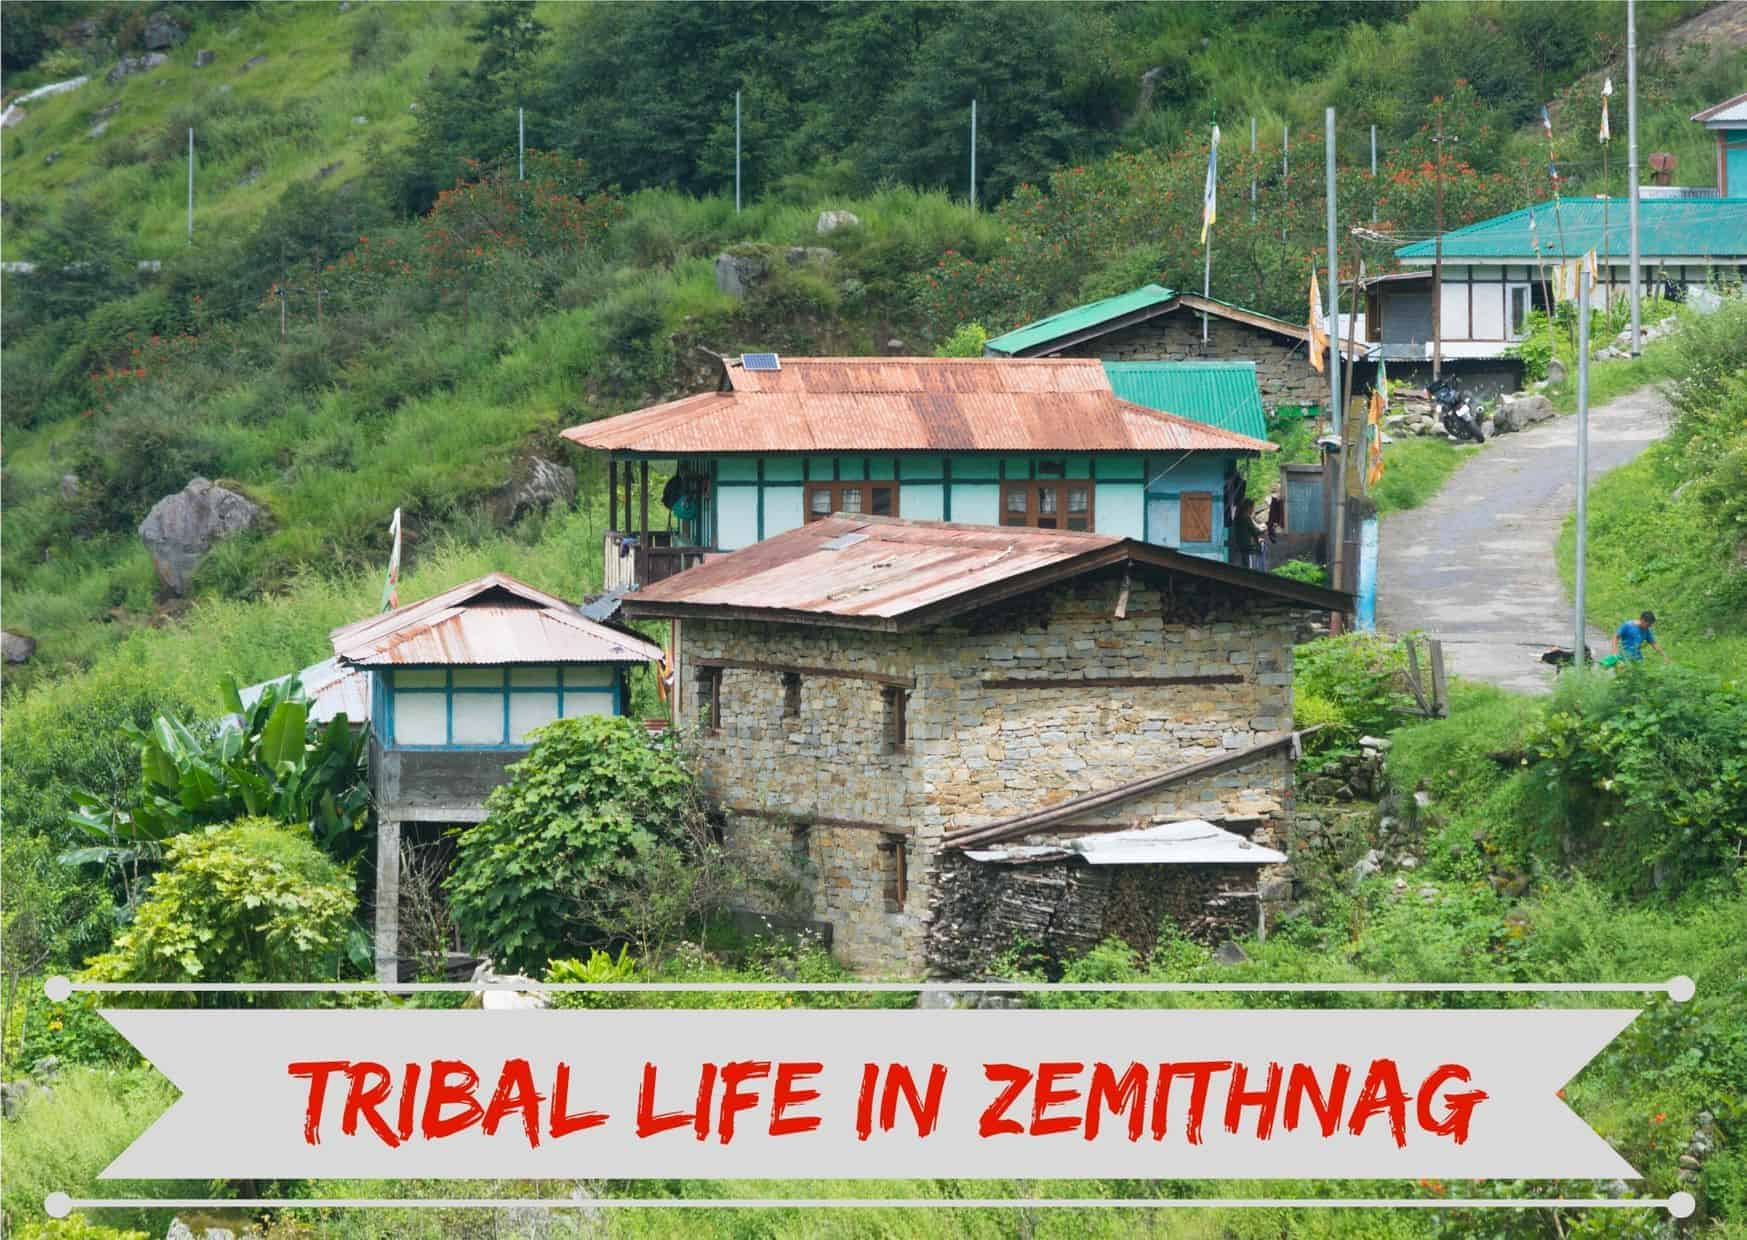 Tour to Zemithang - Offbeat Arunachal Pradesh